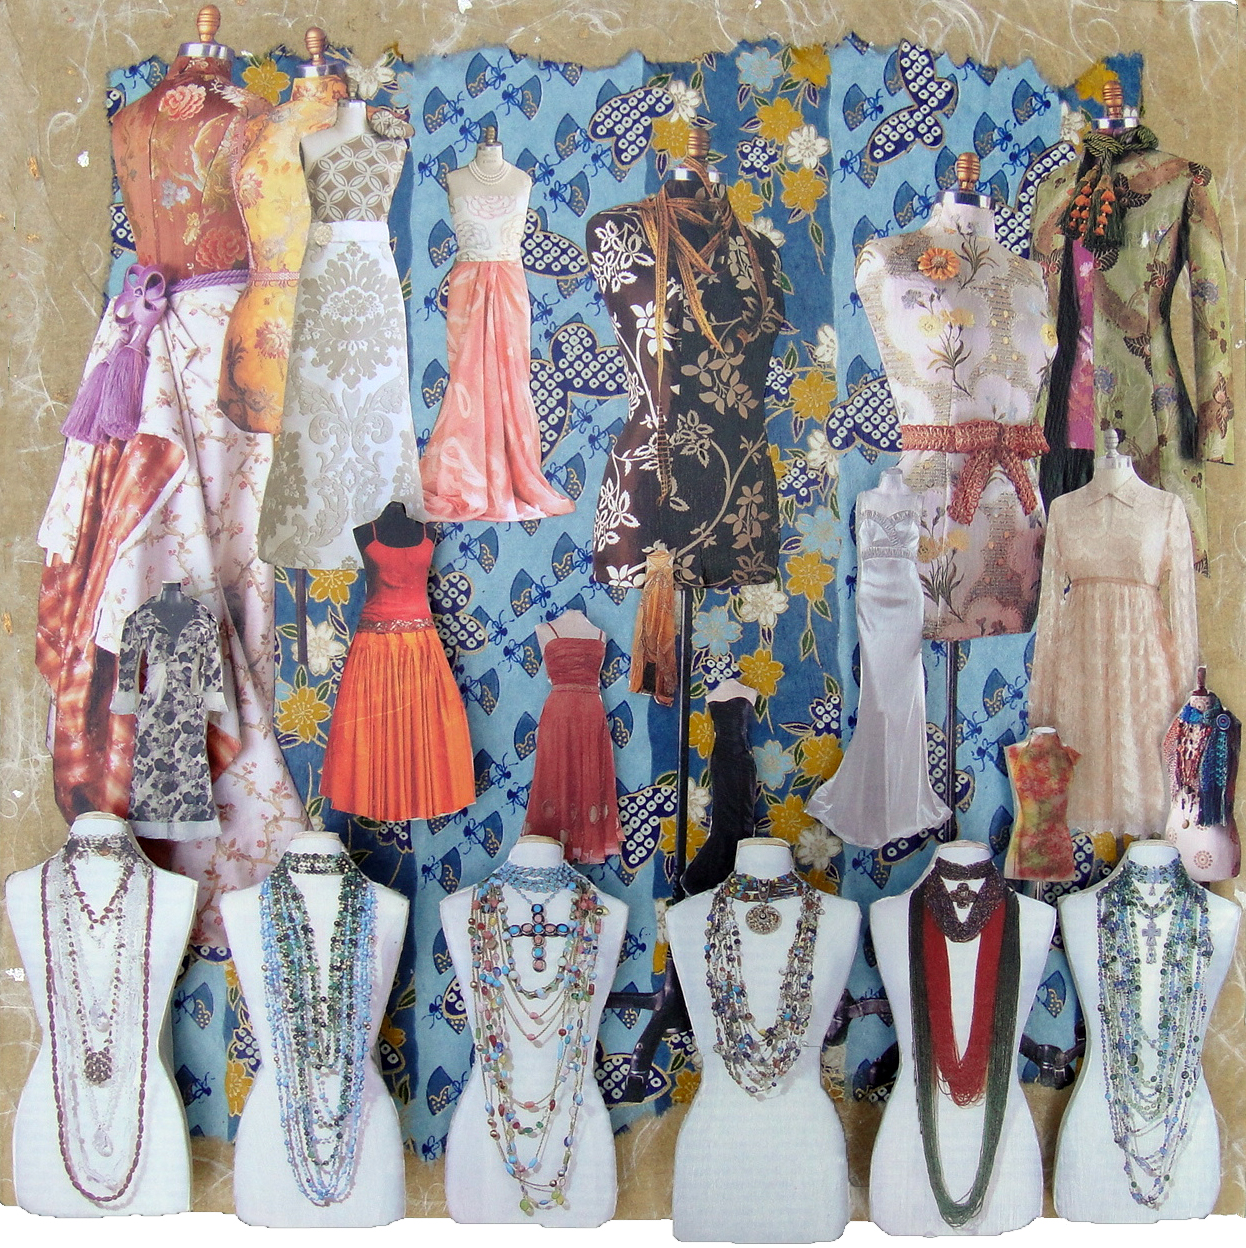 Collage using magazine clippings and decorative papers: What To Wear (2011)